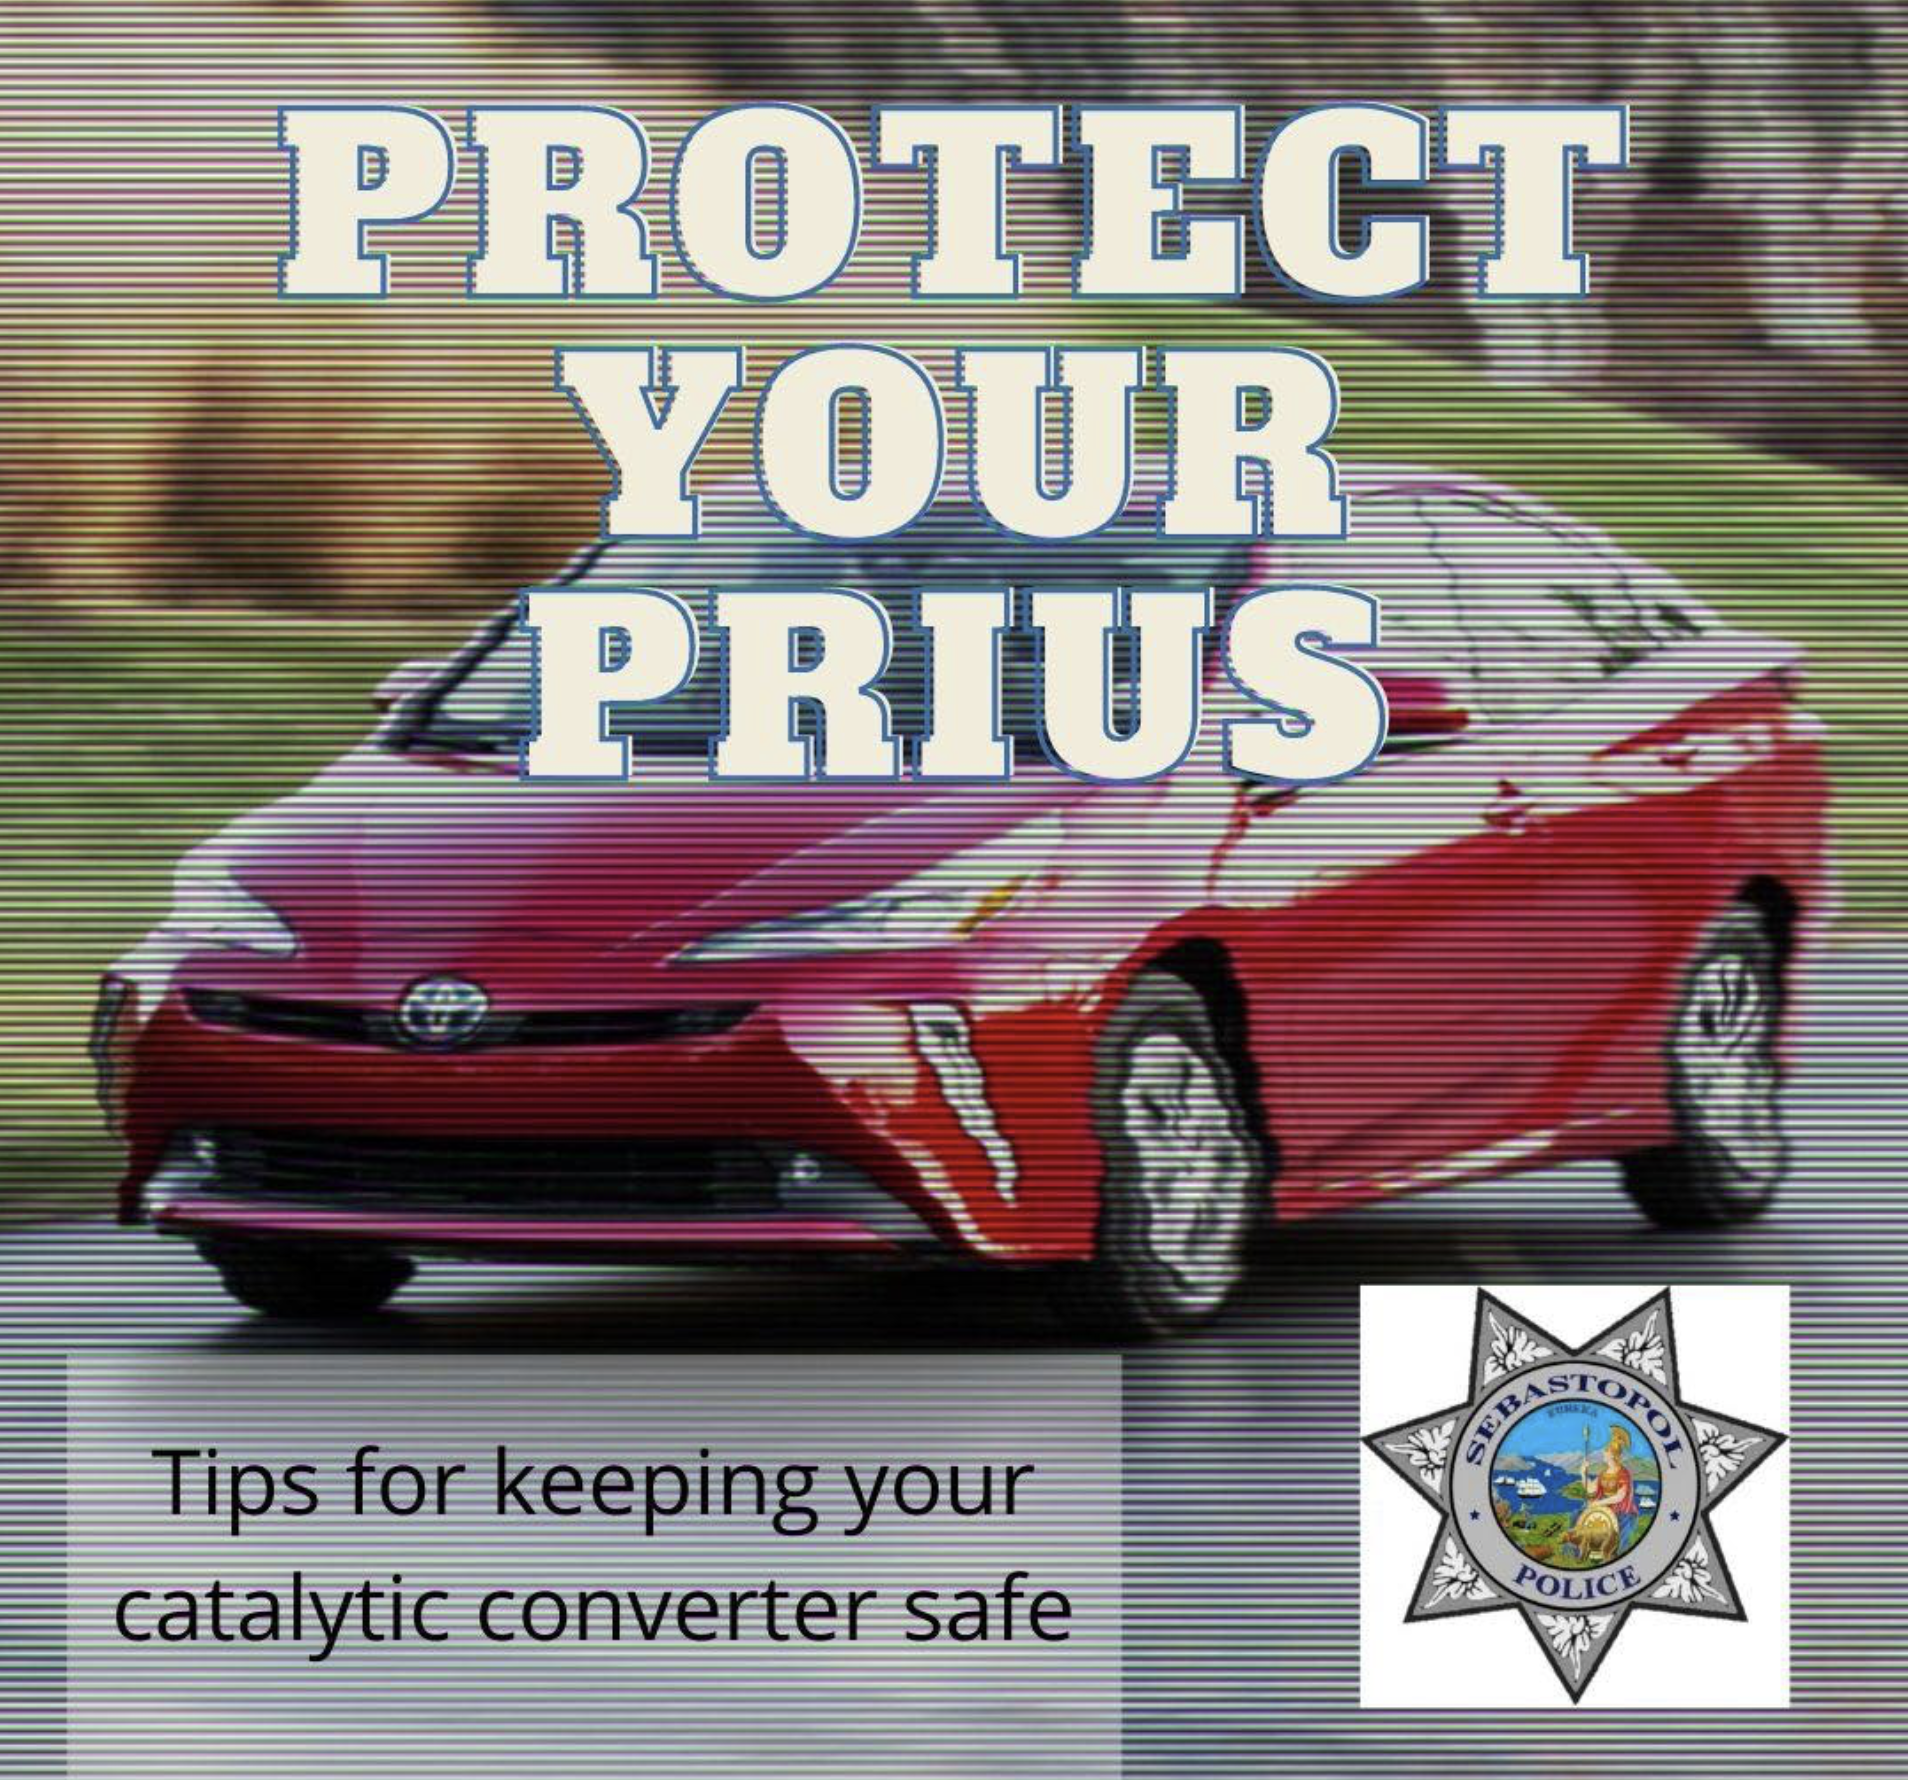 3/10: Thieves are Still on the Prowl for Catalytic Converters in Sebastopol